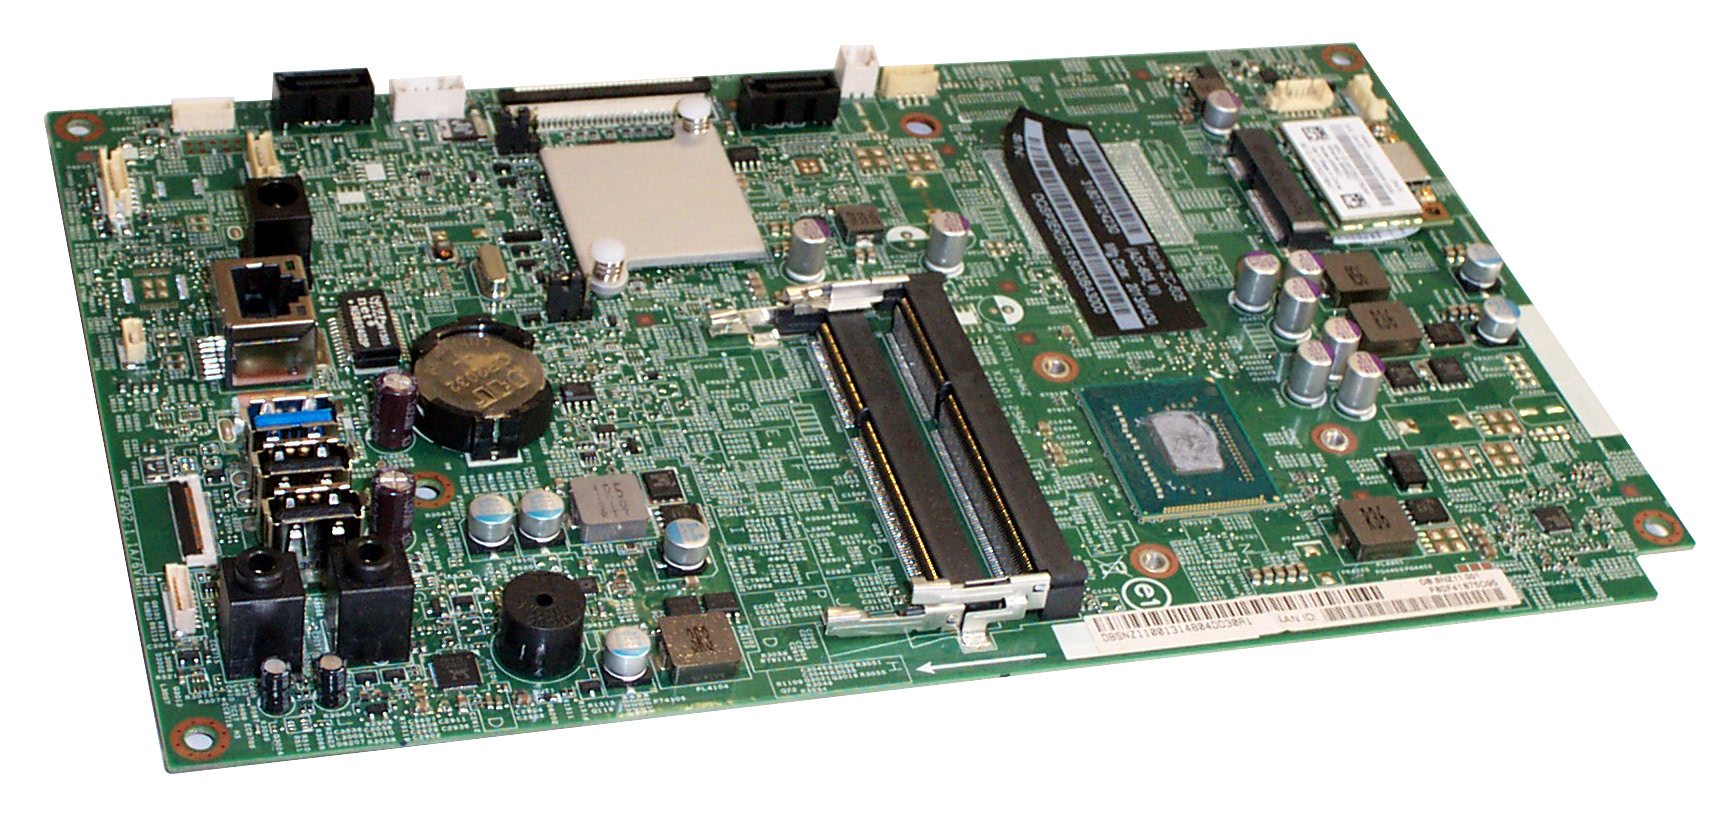 DB.SNZ11.001 Motherboard for Acer Aspire ZC-605 w/ 1.5 GHz Intel Celeron 1007U